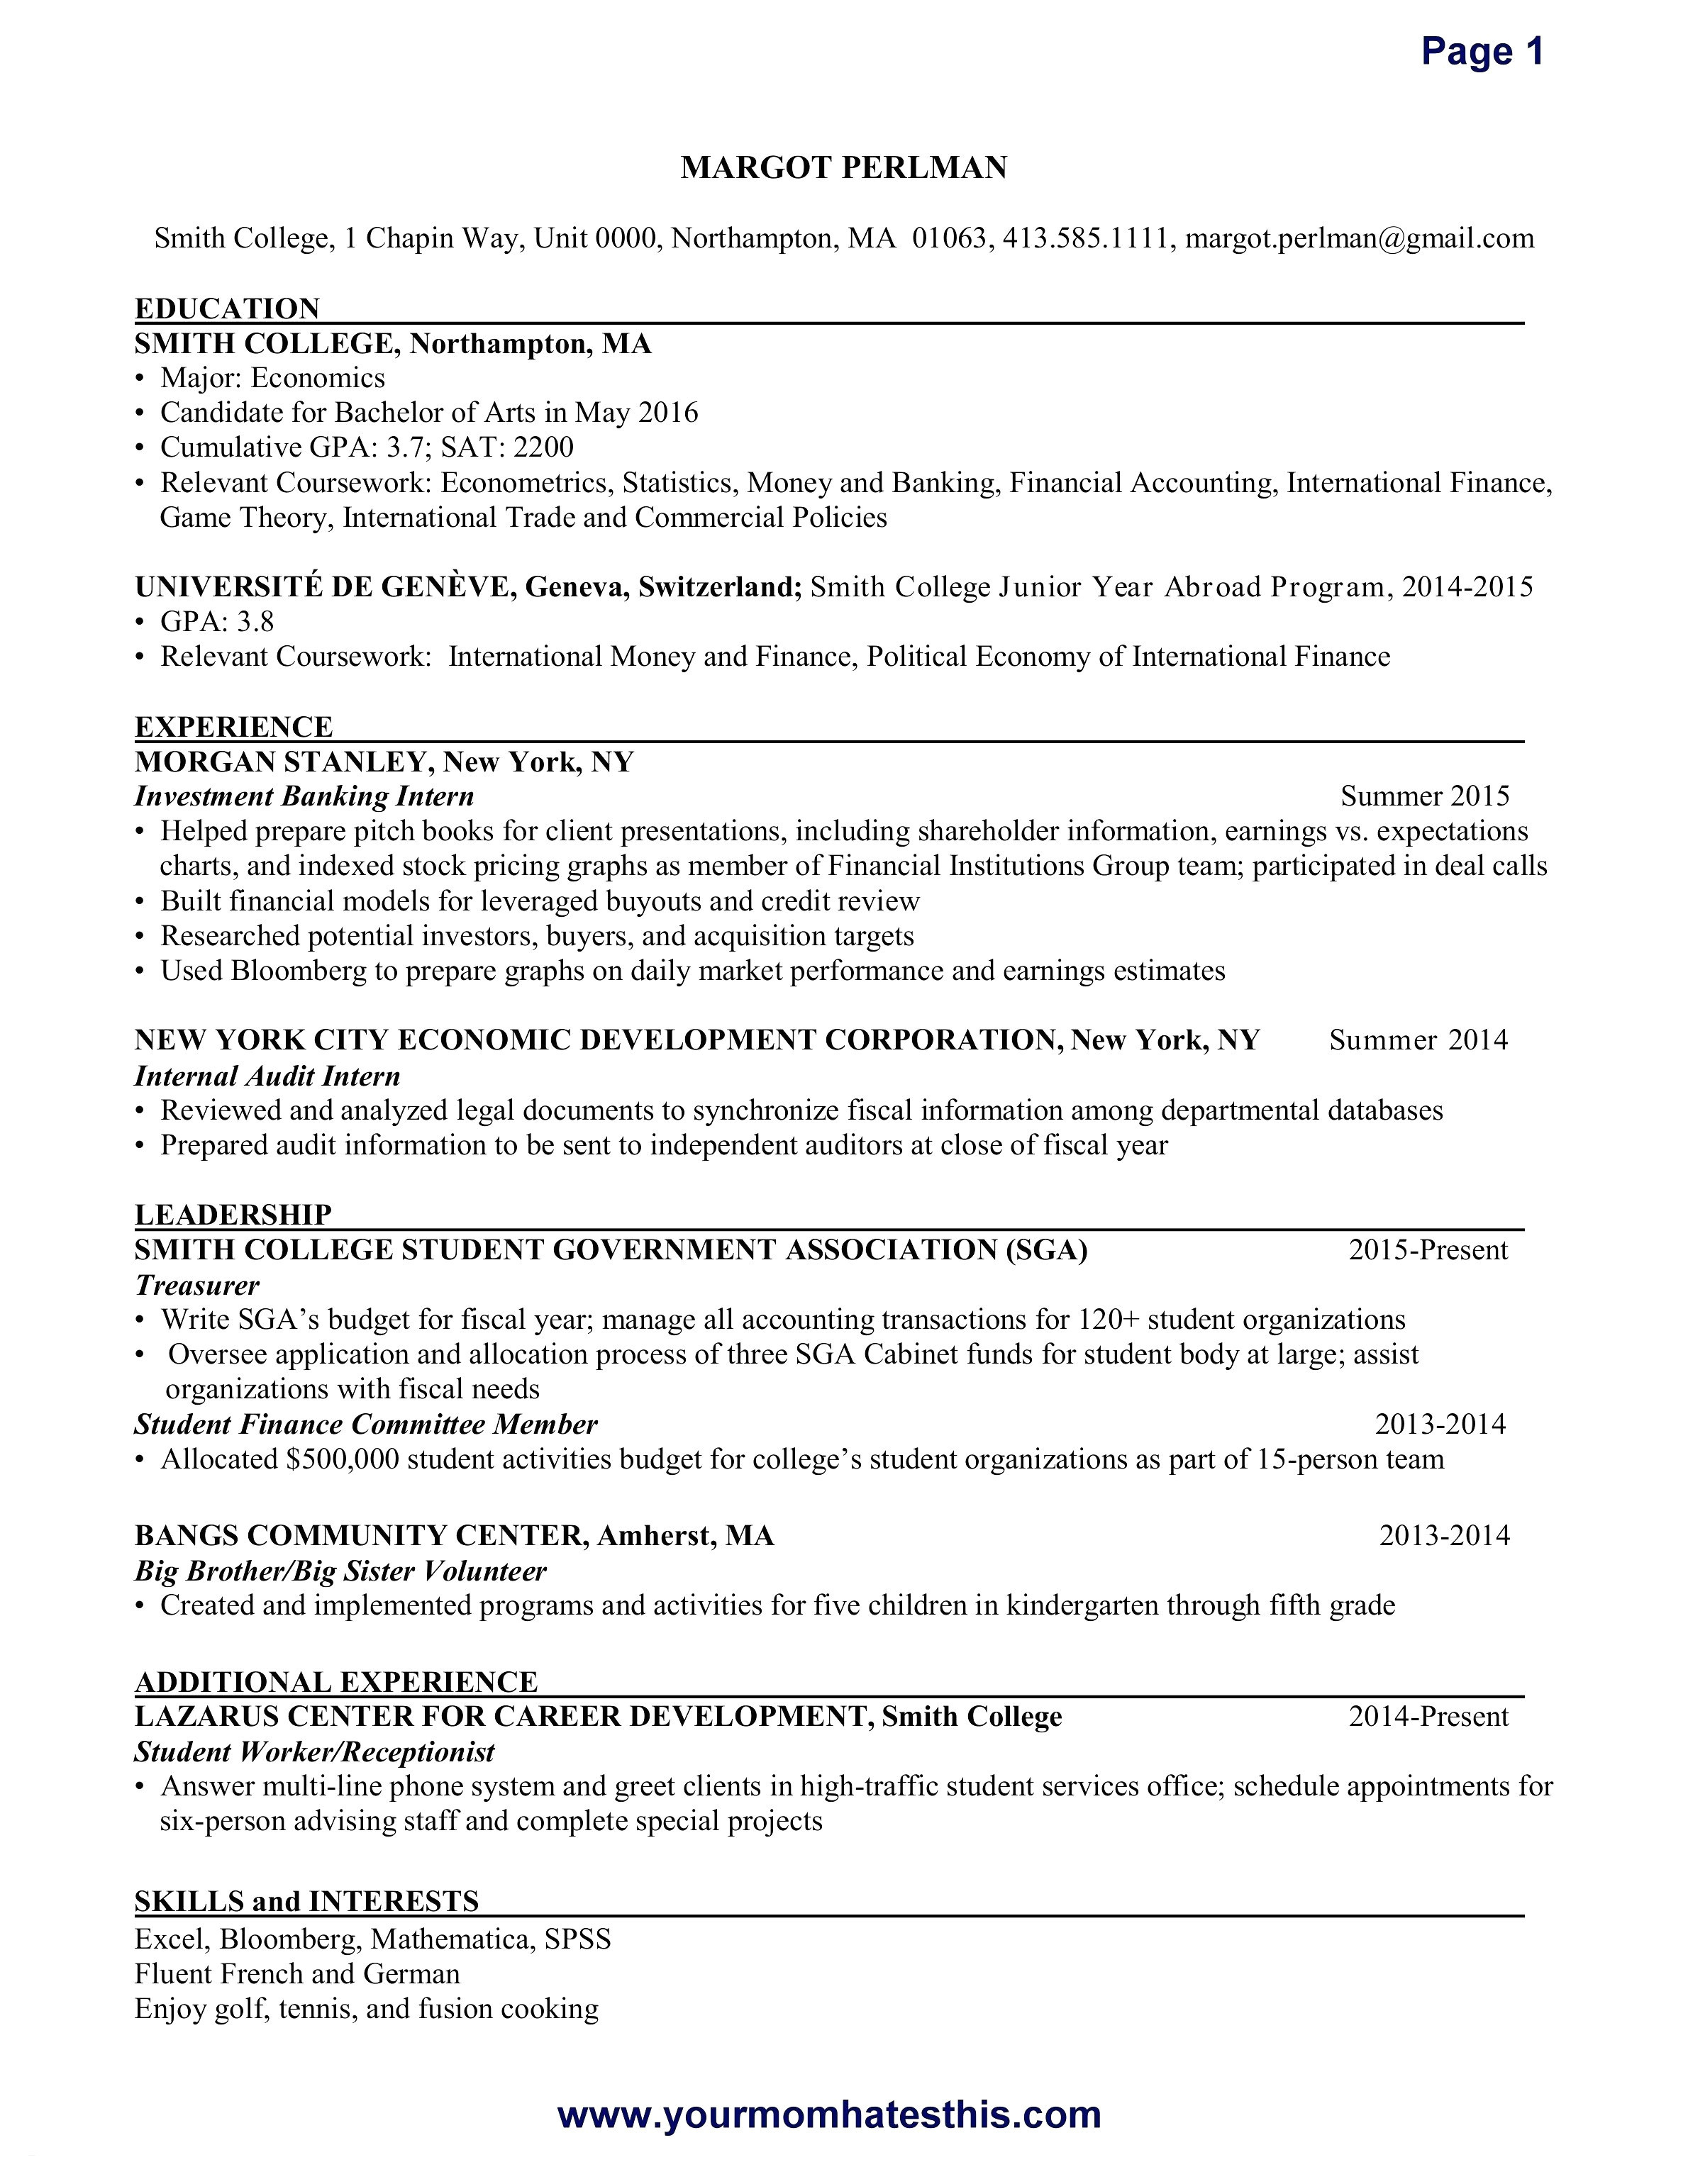 ma resume template Collection-Awesome Security ficer Resume Sample 10-h